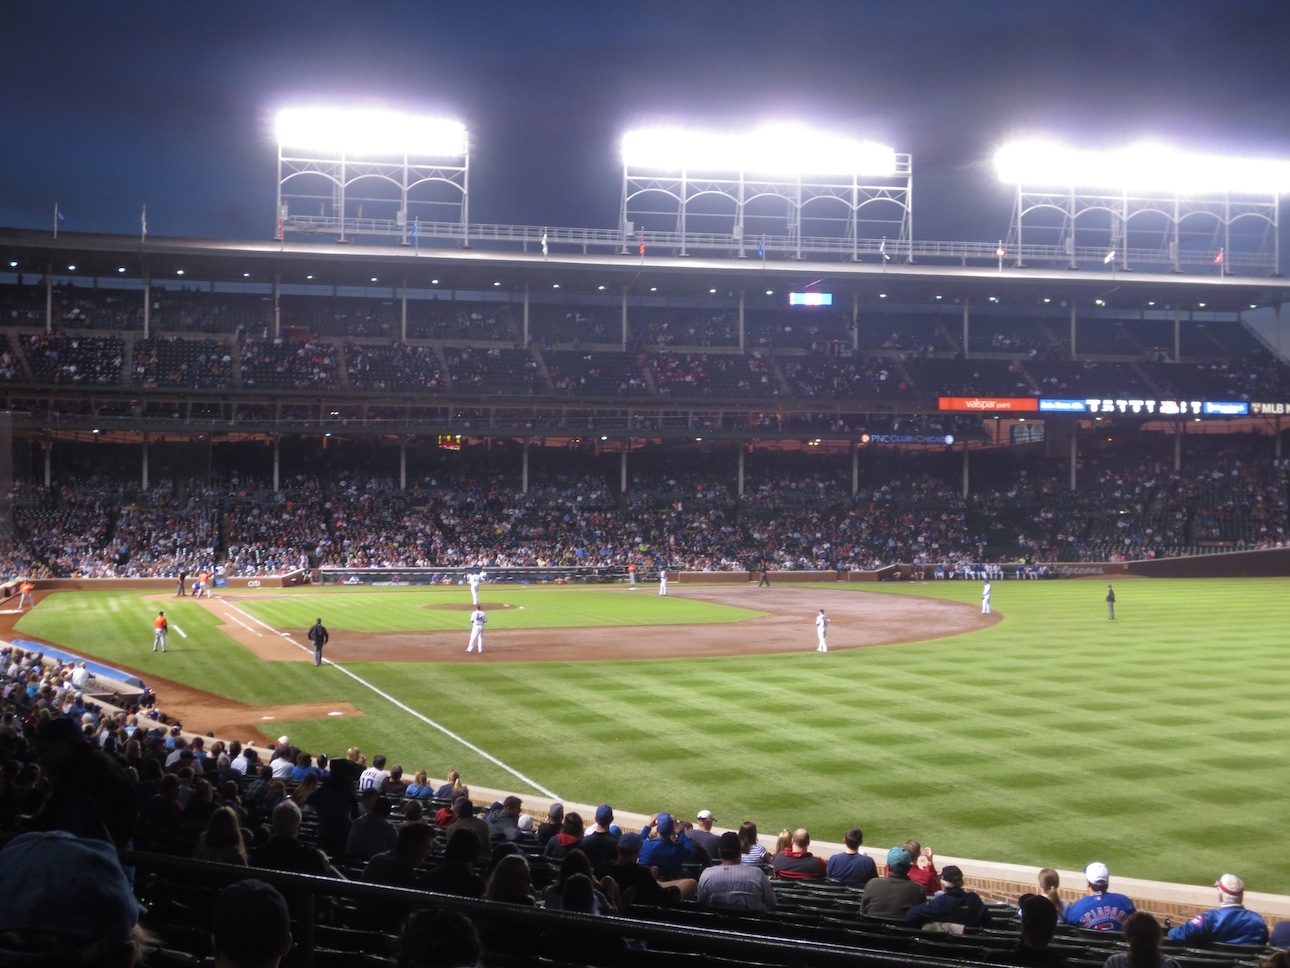 A Cubs game at Wrigley Field.